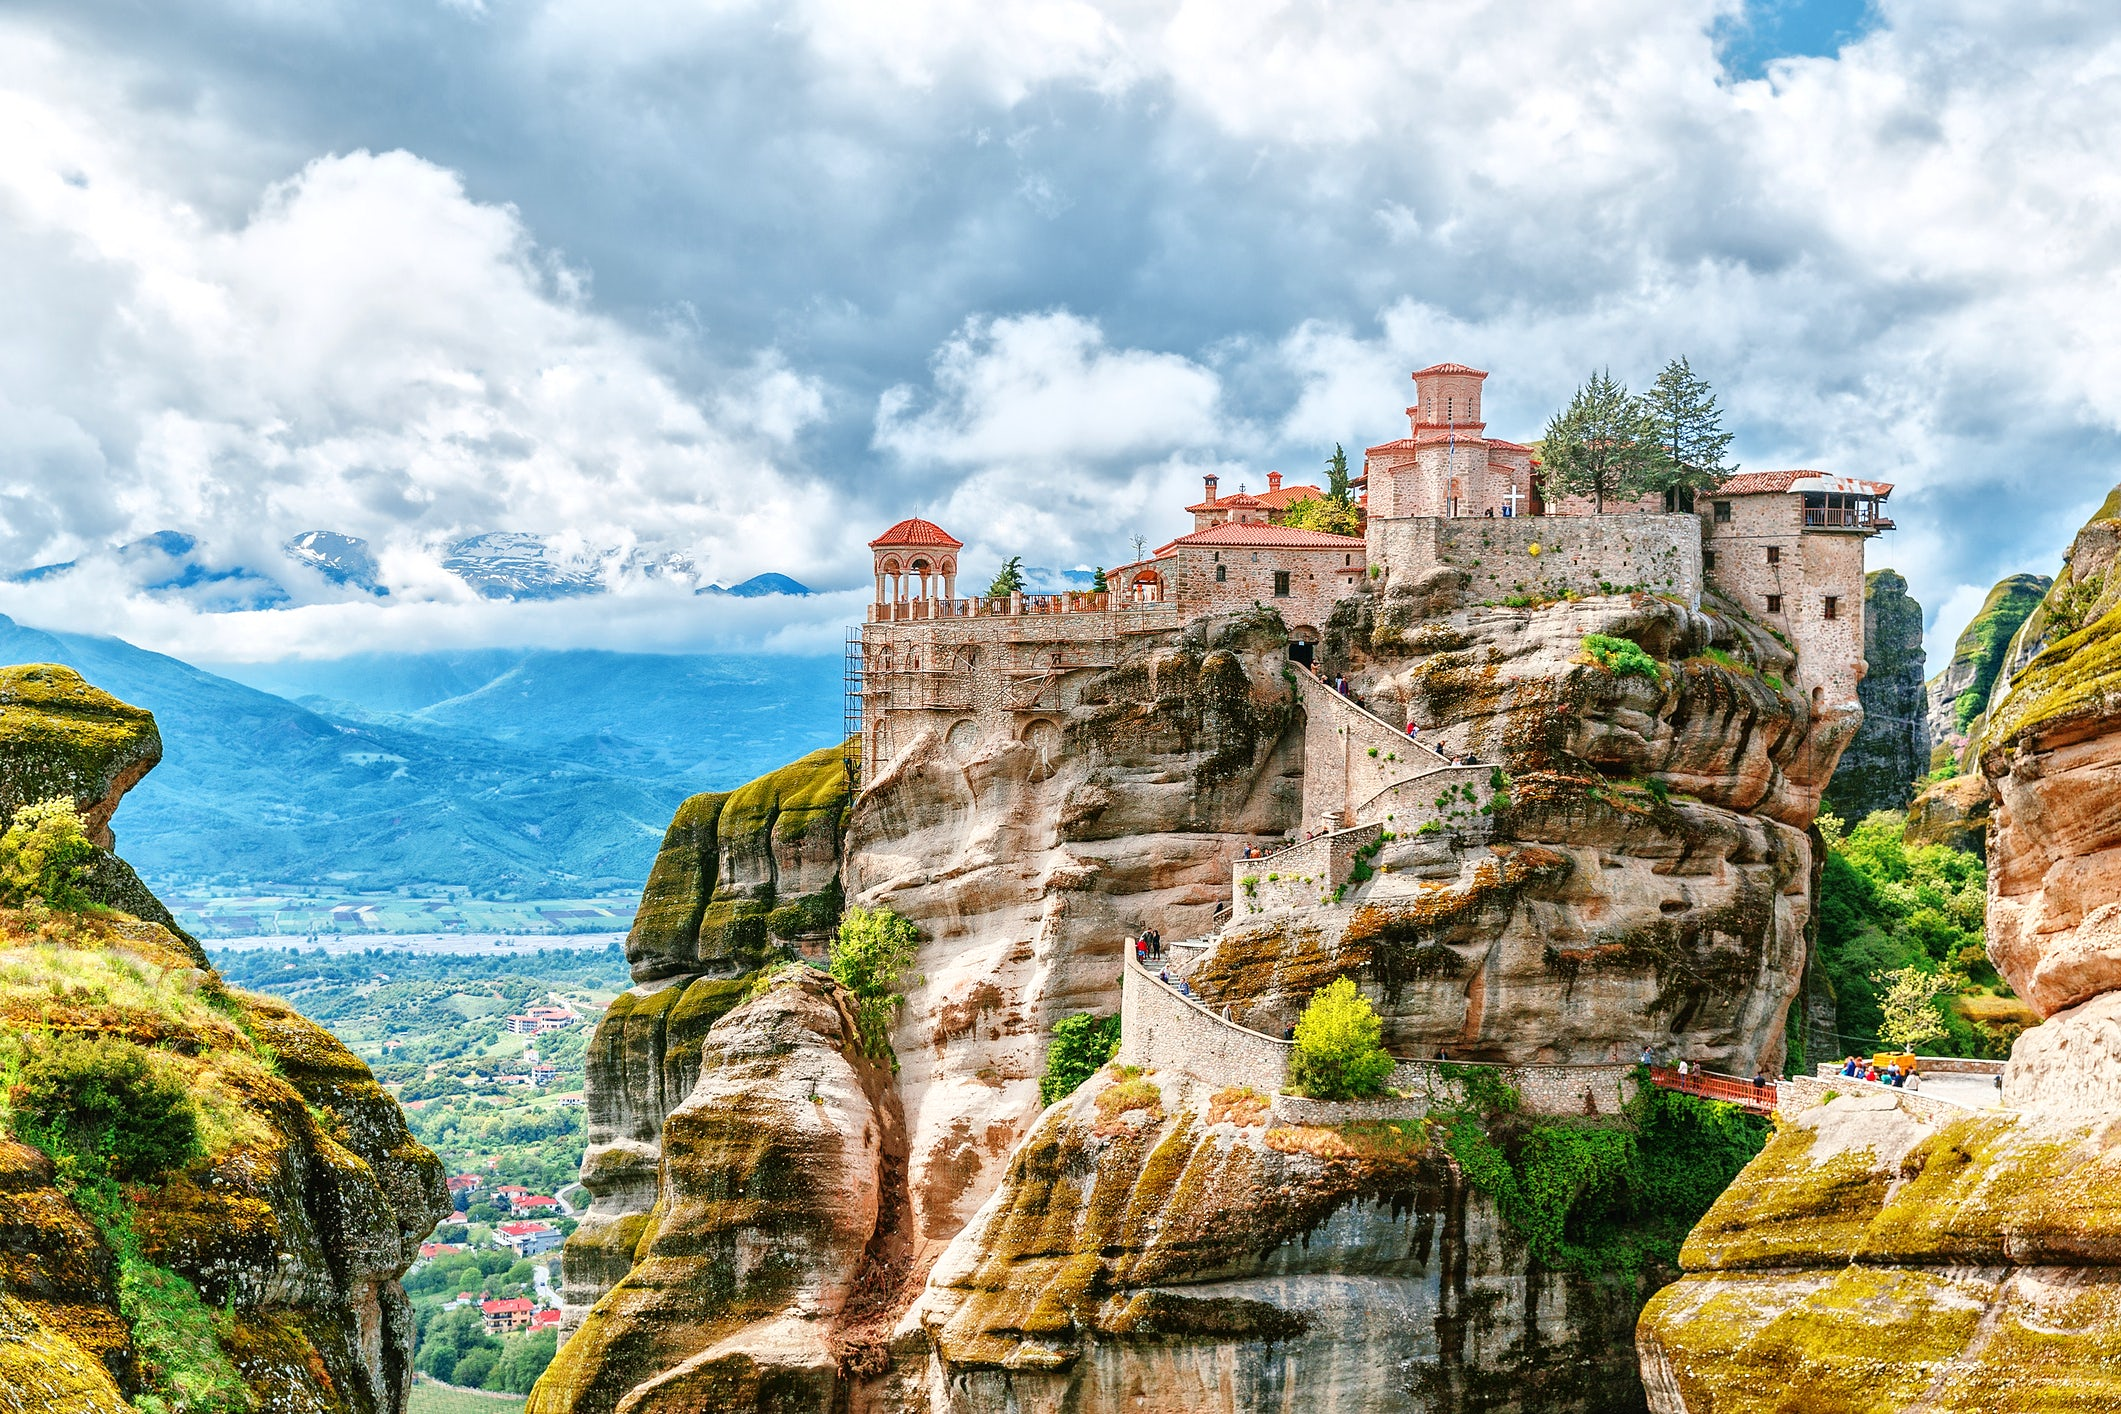 Meteora; the Suspended in the air Monastery